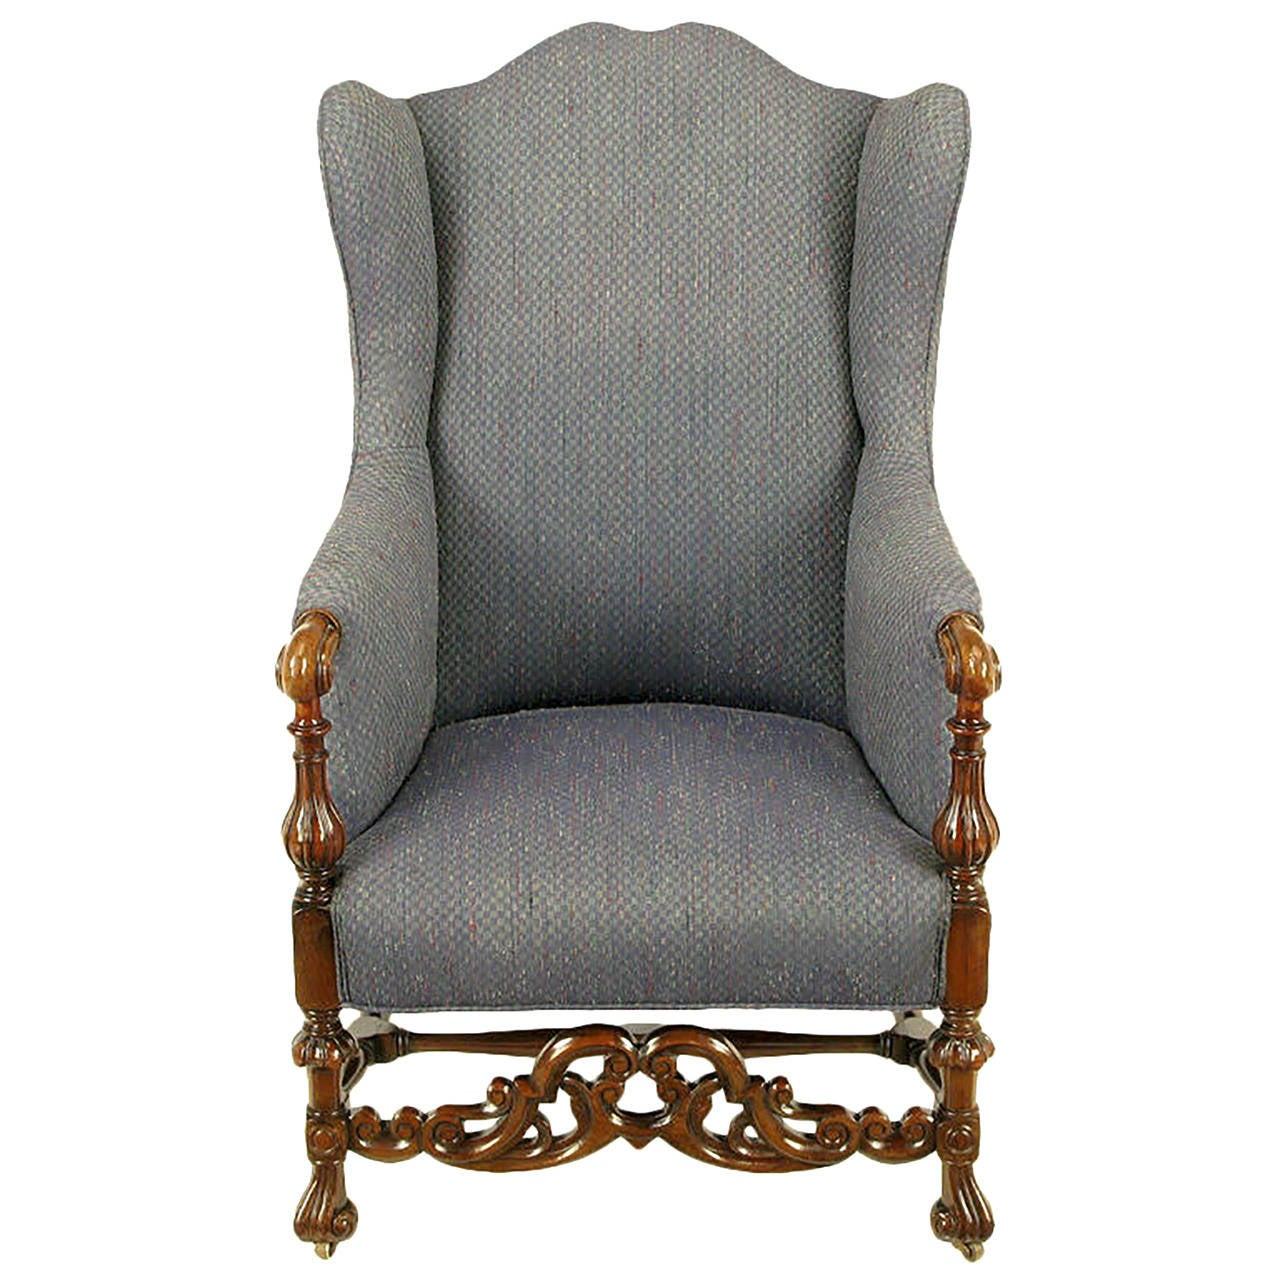 Wing Chair Italian Regency Upholstered Wing Chair With Carved Wood